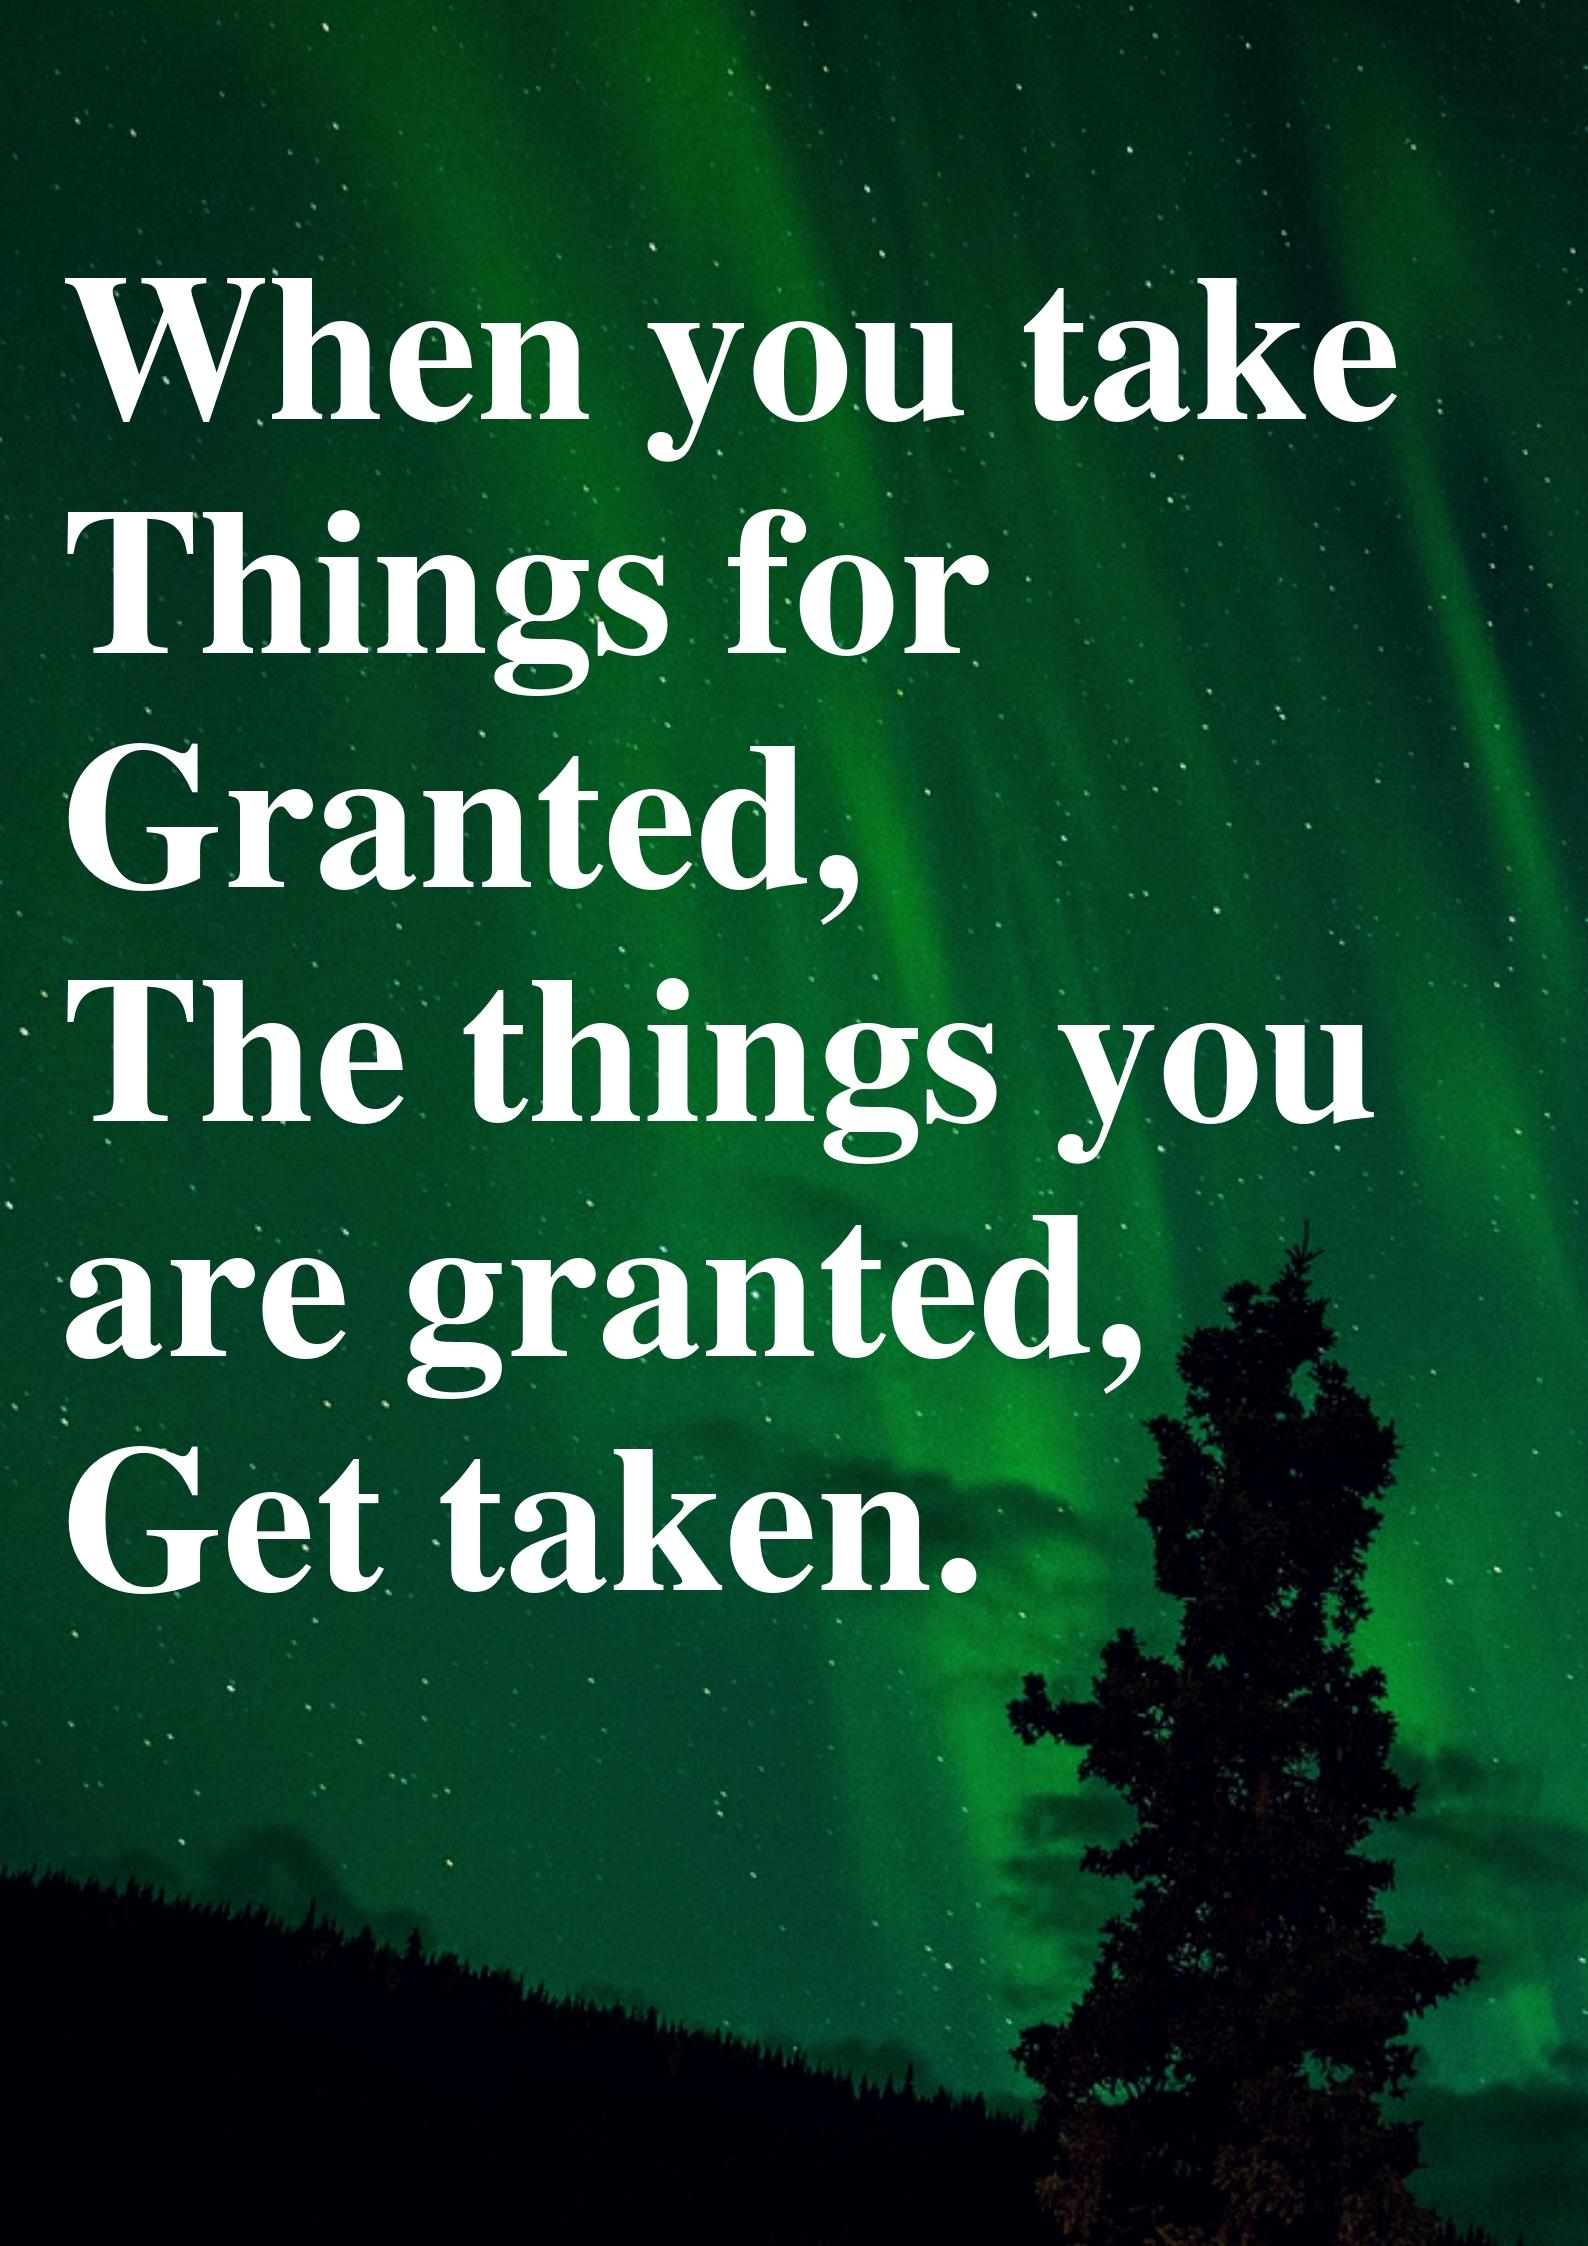 [IMAGE] Don't take things for granted!!